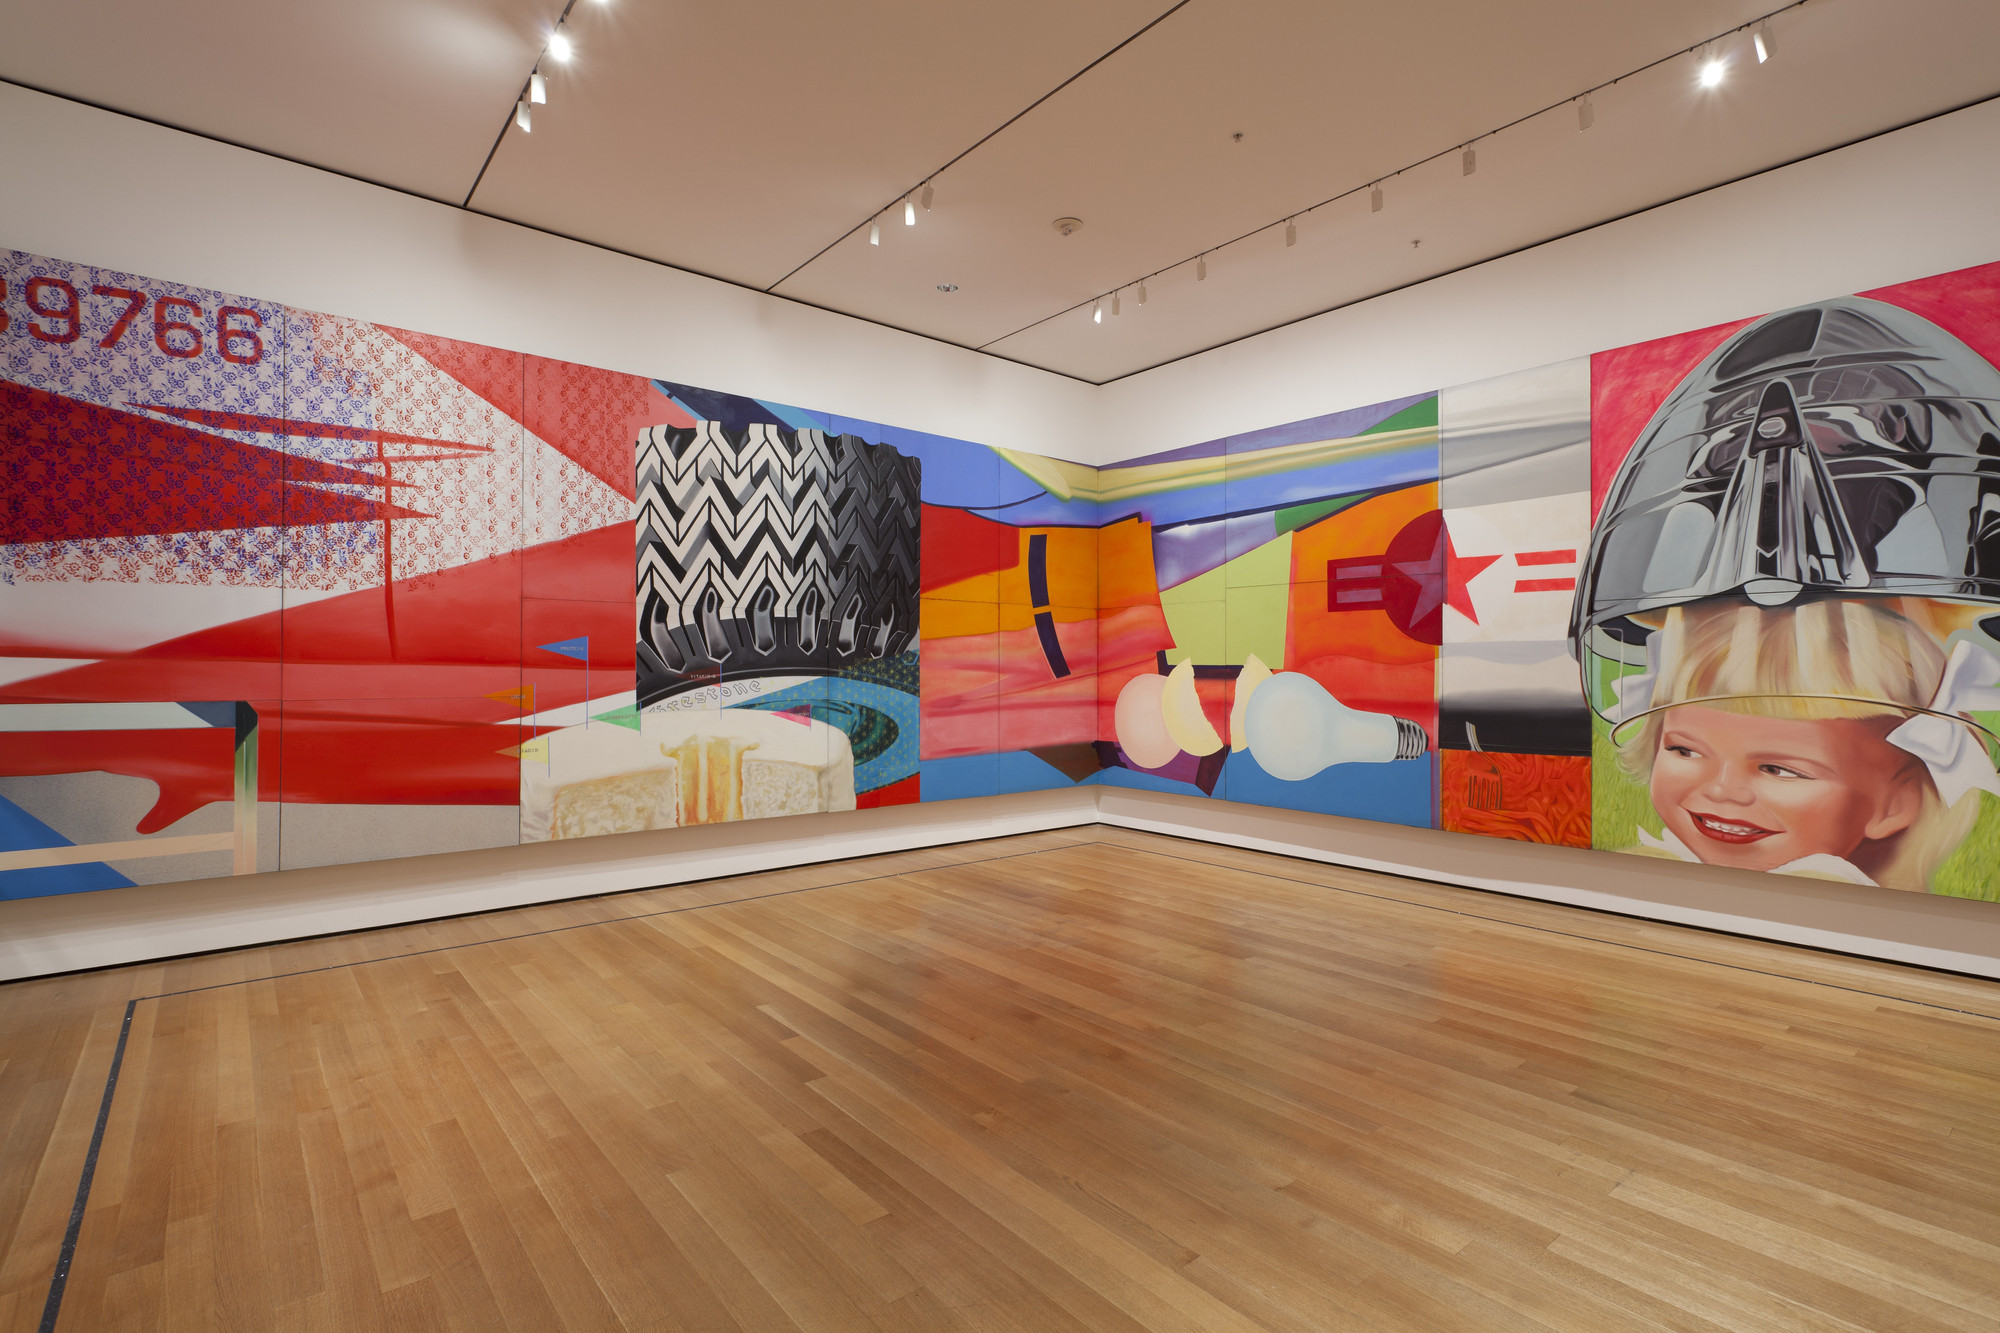 James Rosenquist. F-111. 1964-65